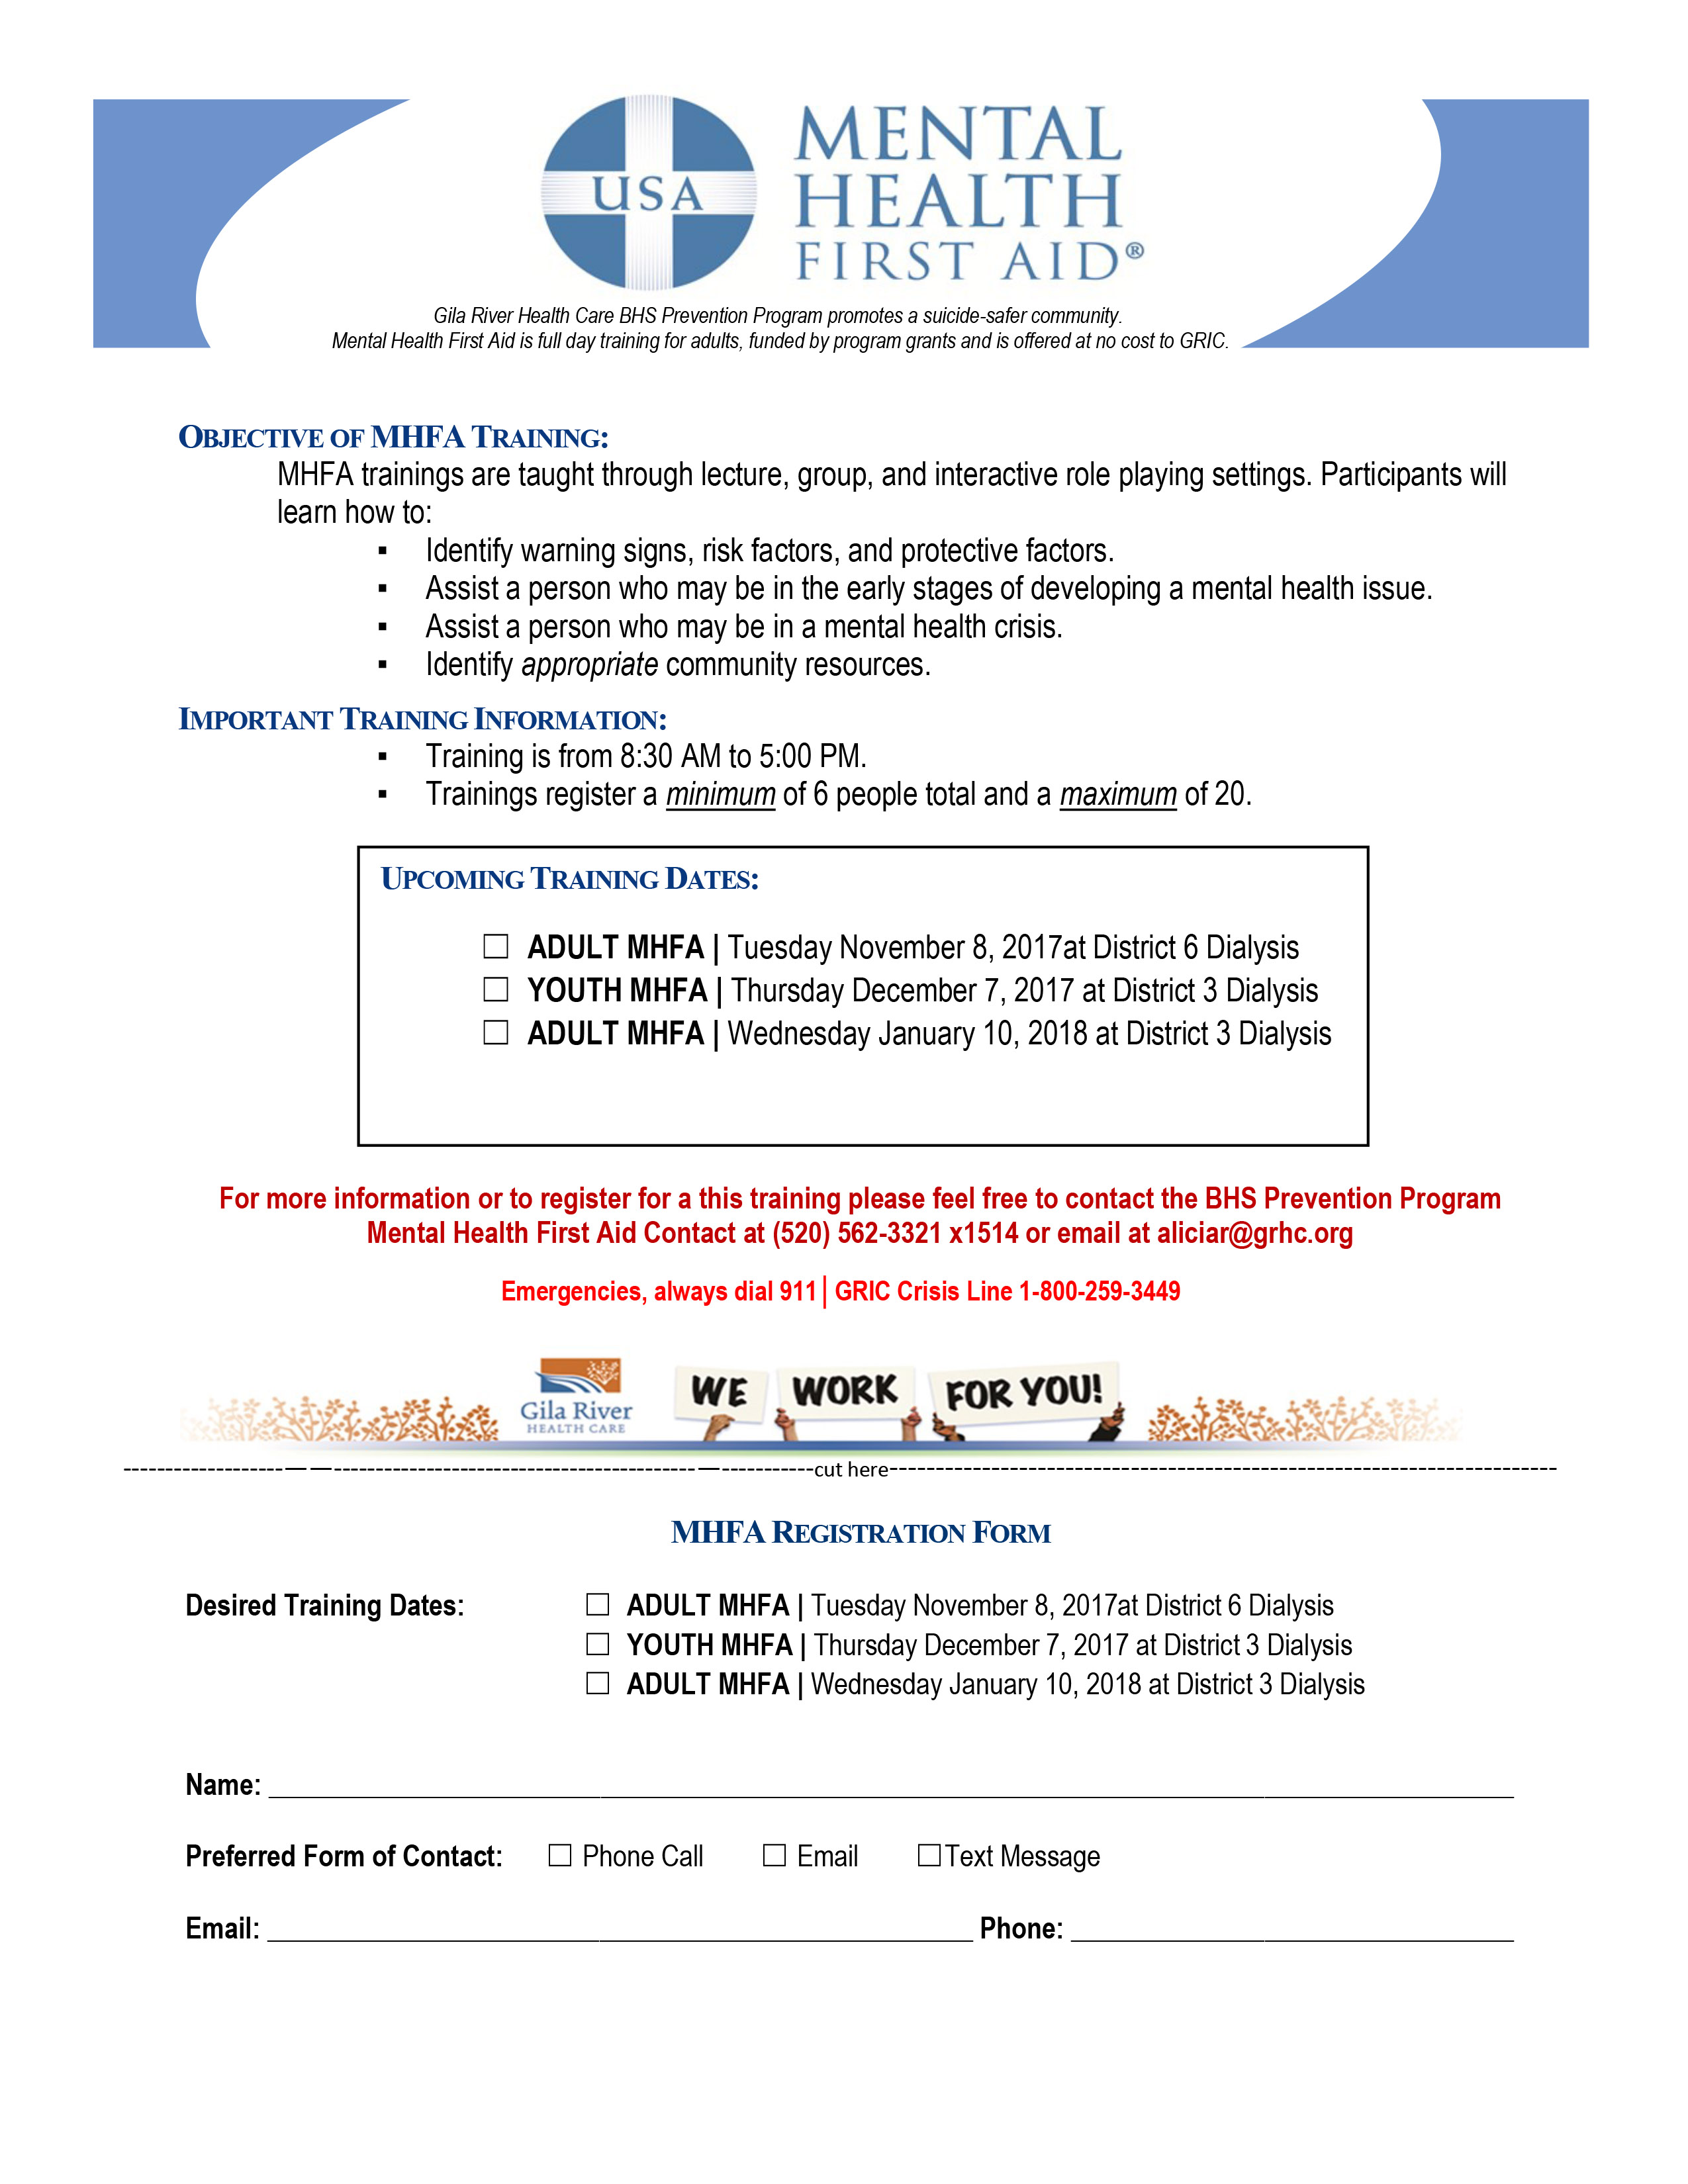 MHFA REGISTRATION FORM